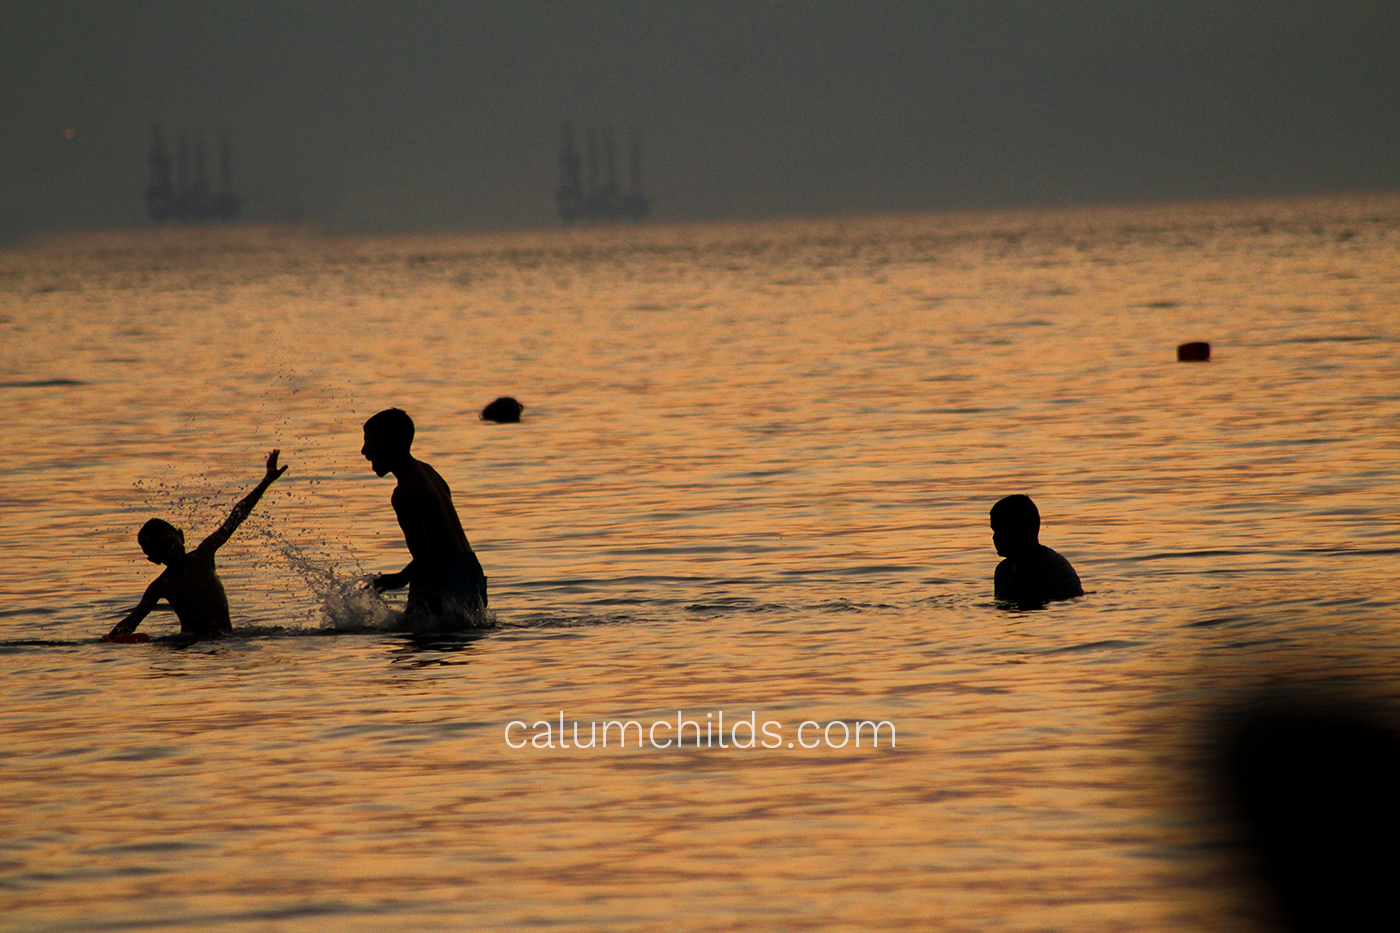 Three people (silhouettes) playing in the sea.